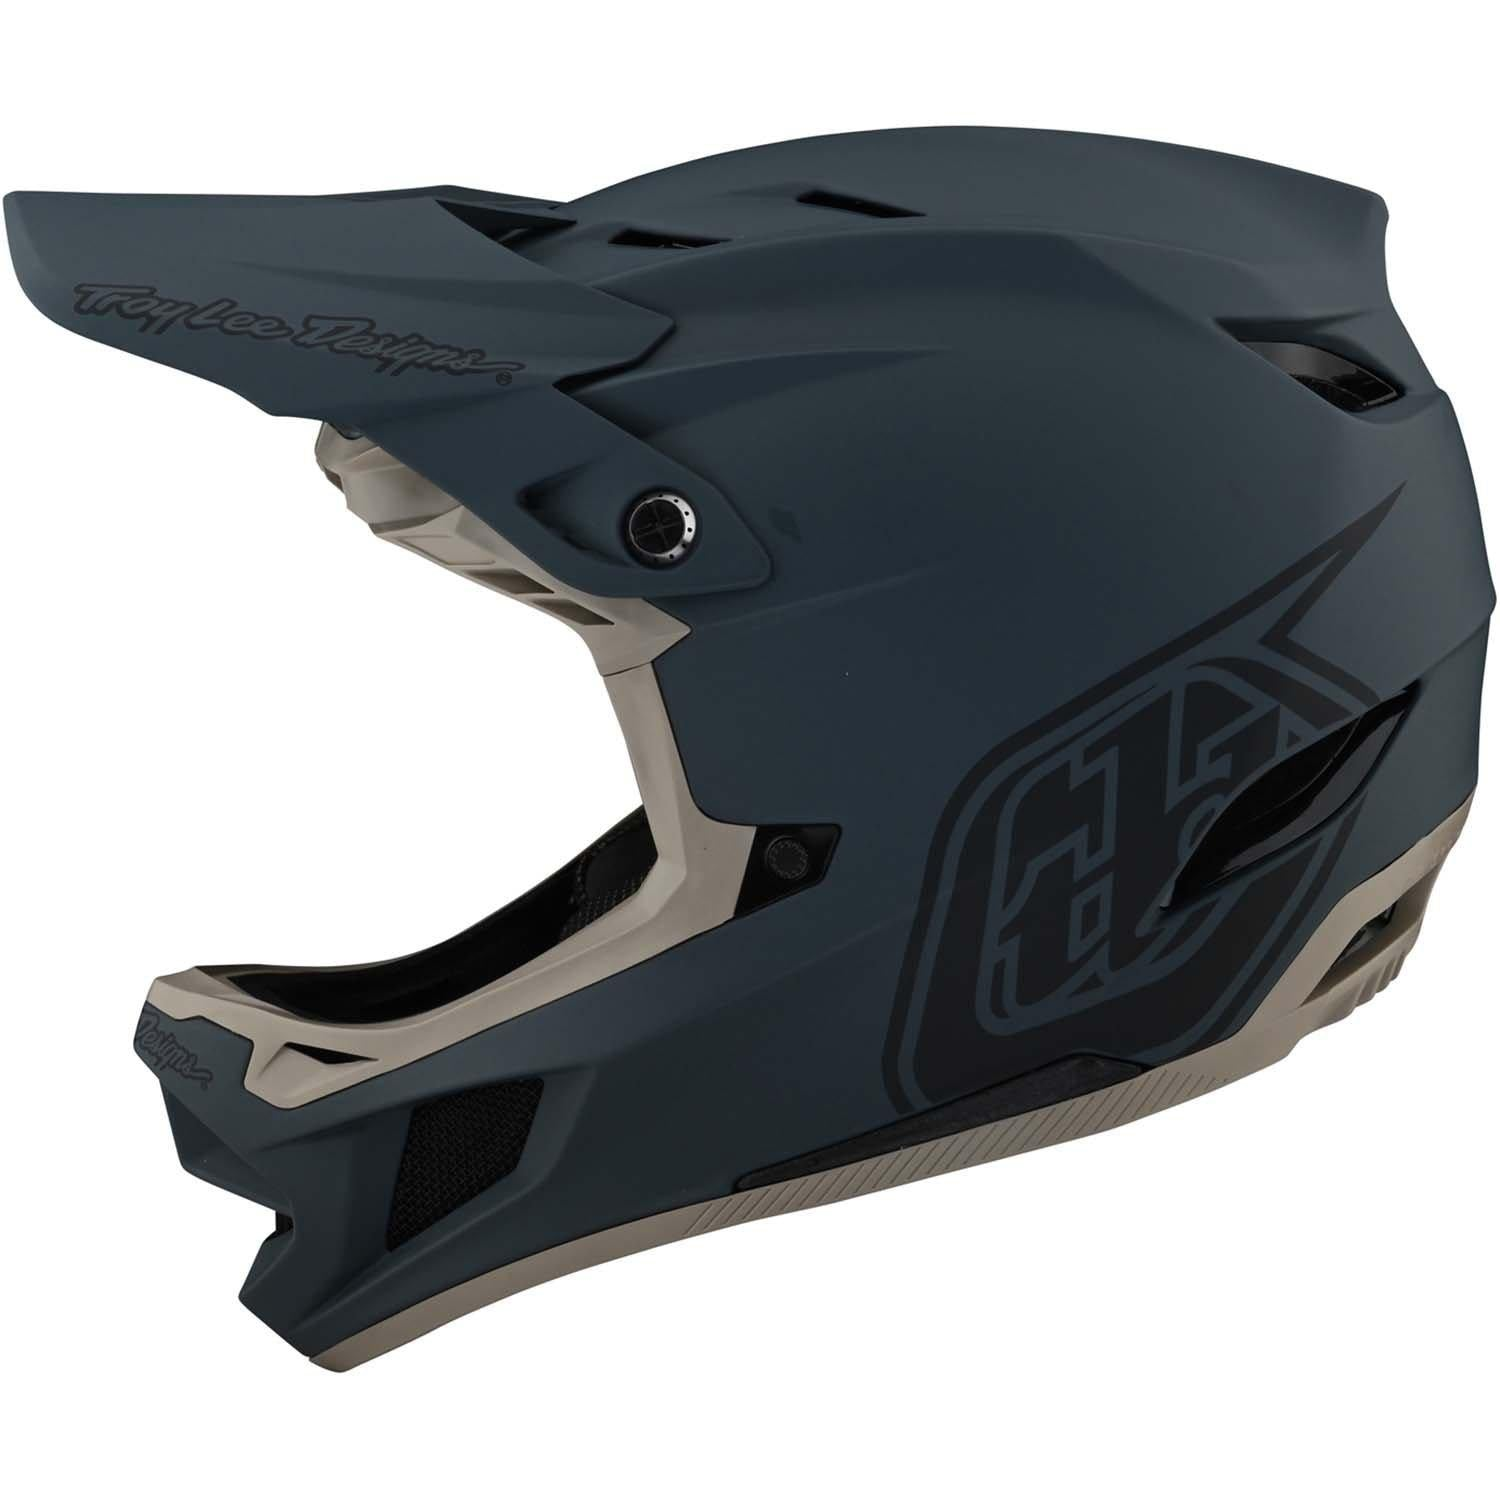 Troy Lee Designs-Troy Lee Designs D4 Composite Helmet-Gray-XS-TLD140437011-saddleback-elite-performance-cycling